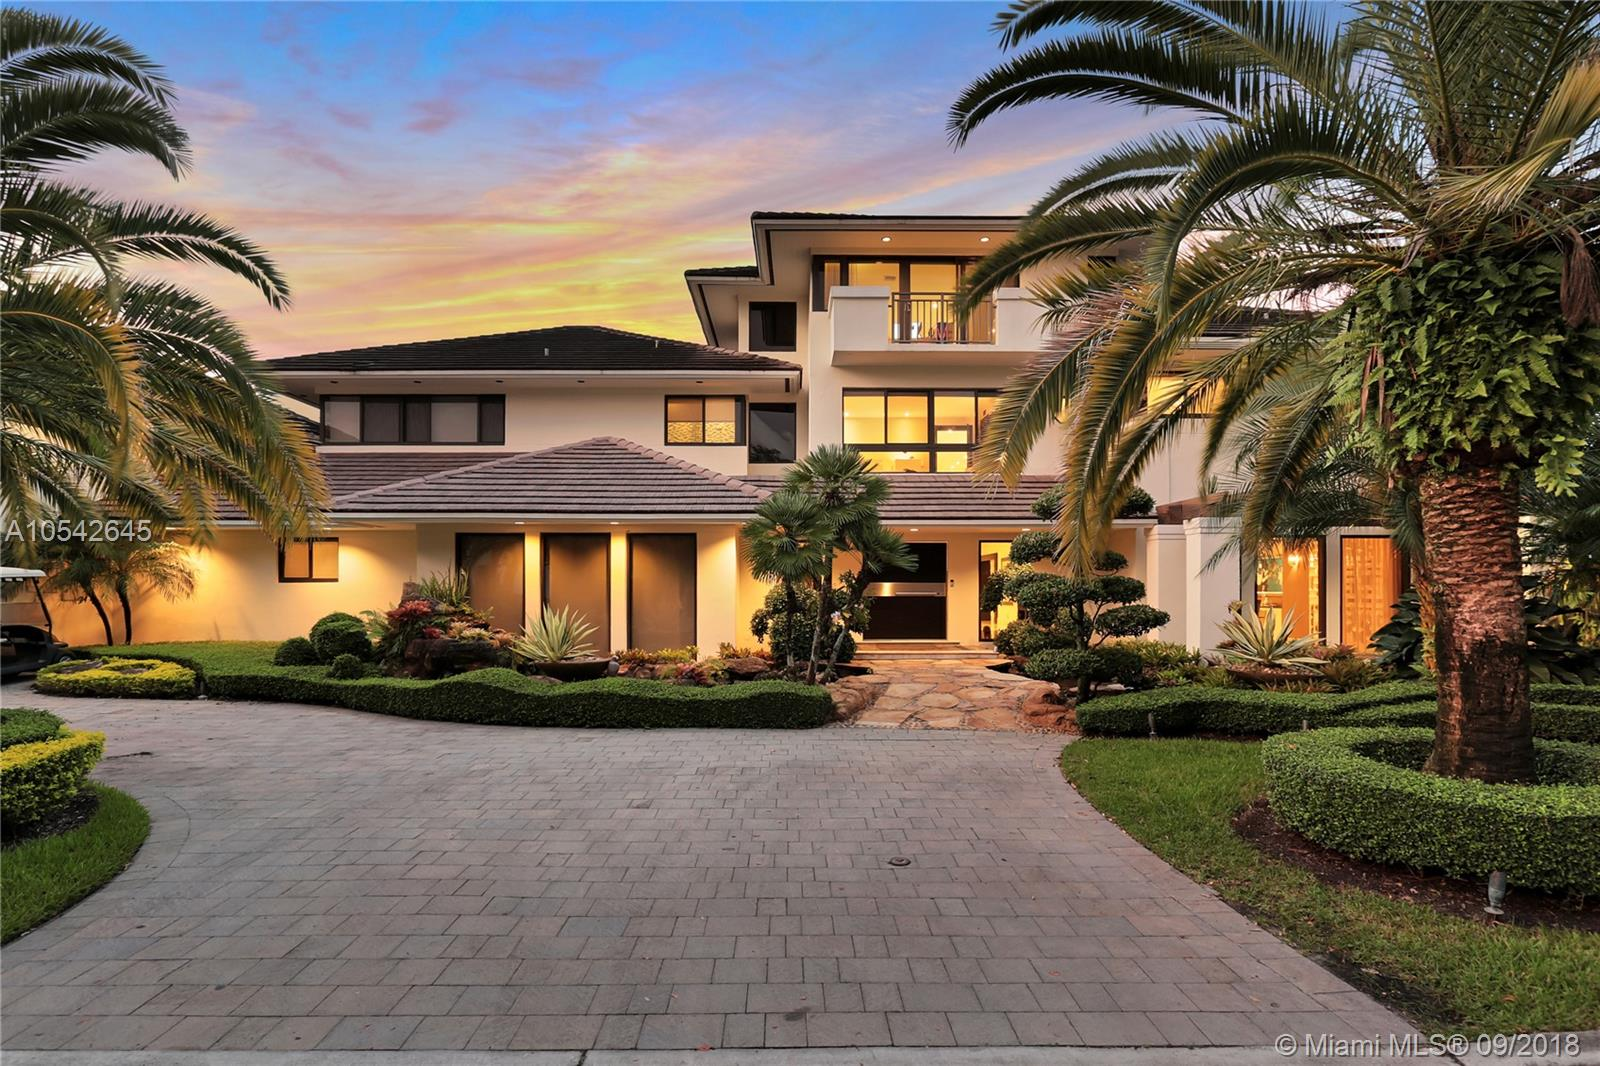 9464 NW 52nd Doral Ln  For Sale A10542645, FL